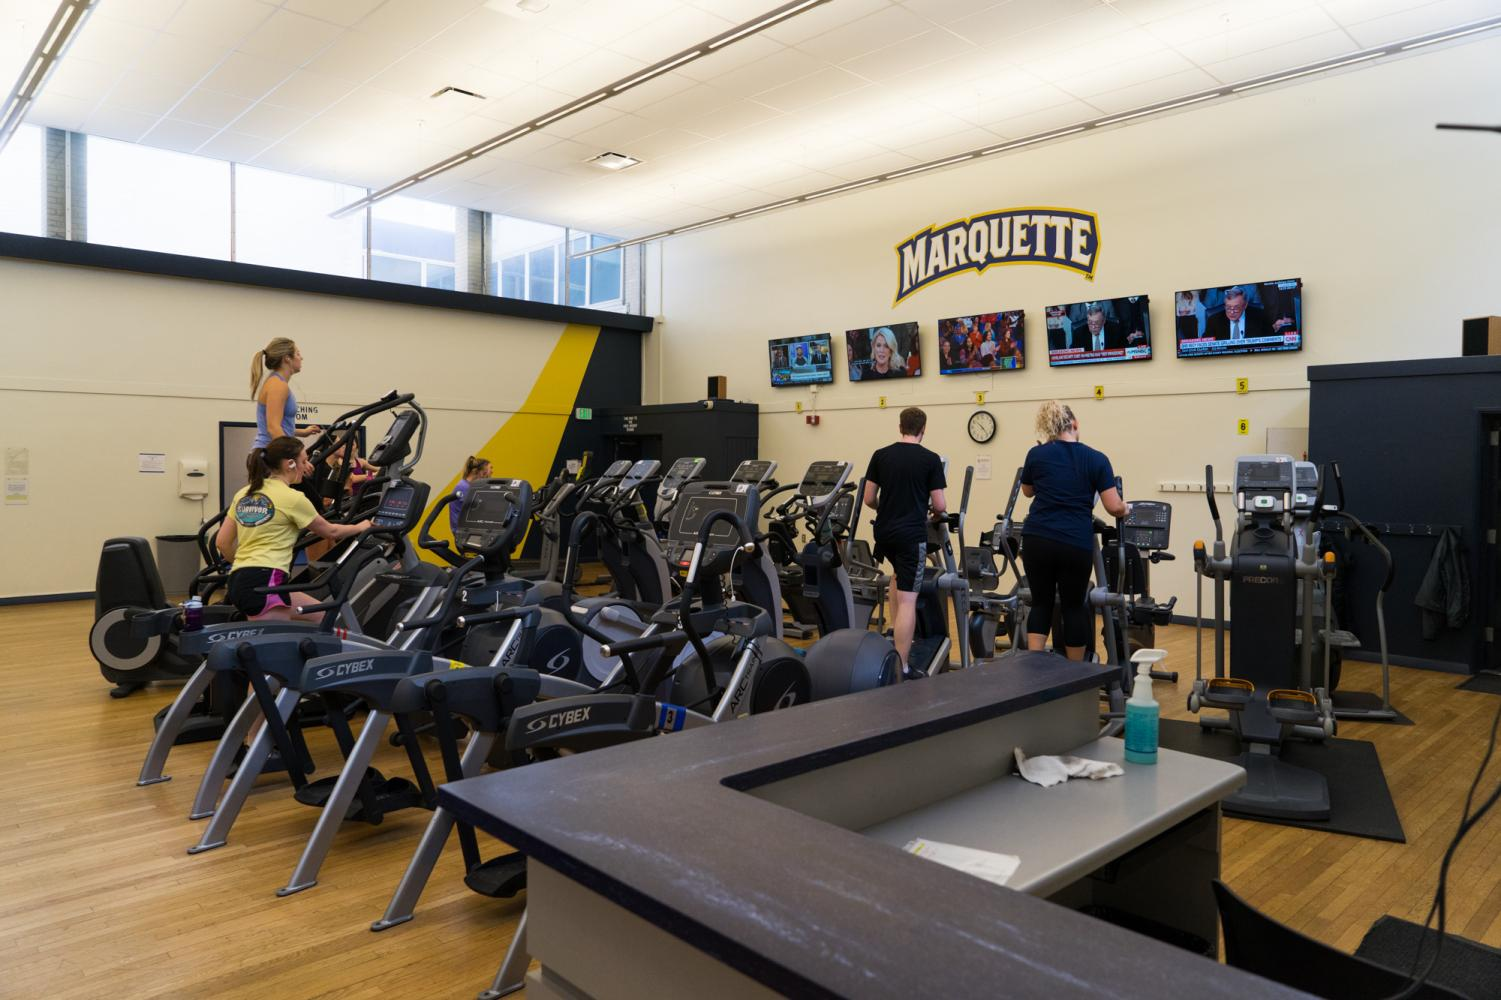 Some students hope to spend more time at the gym this semester as part of their resolution to be more healthy.